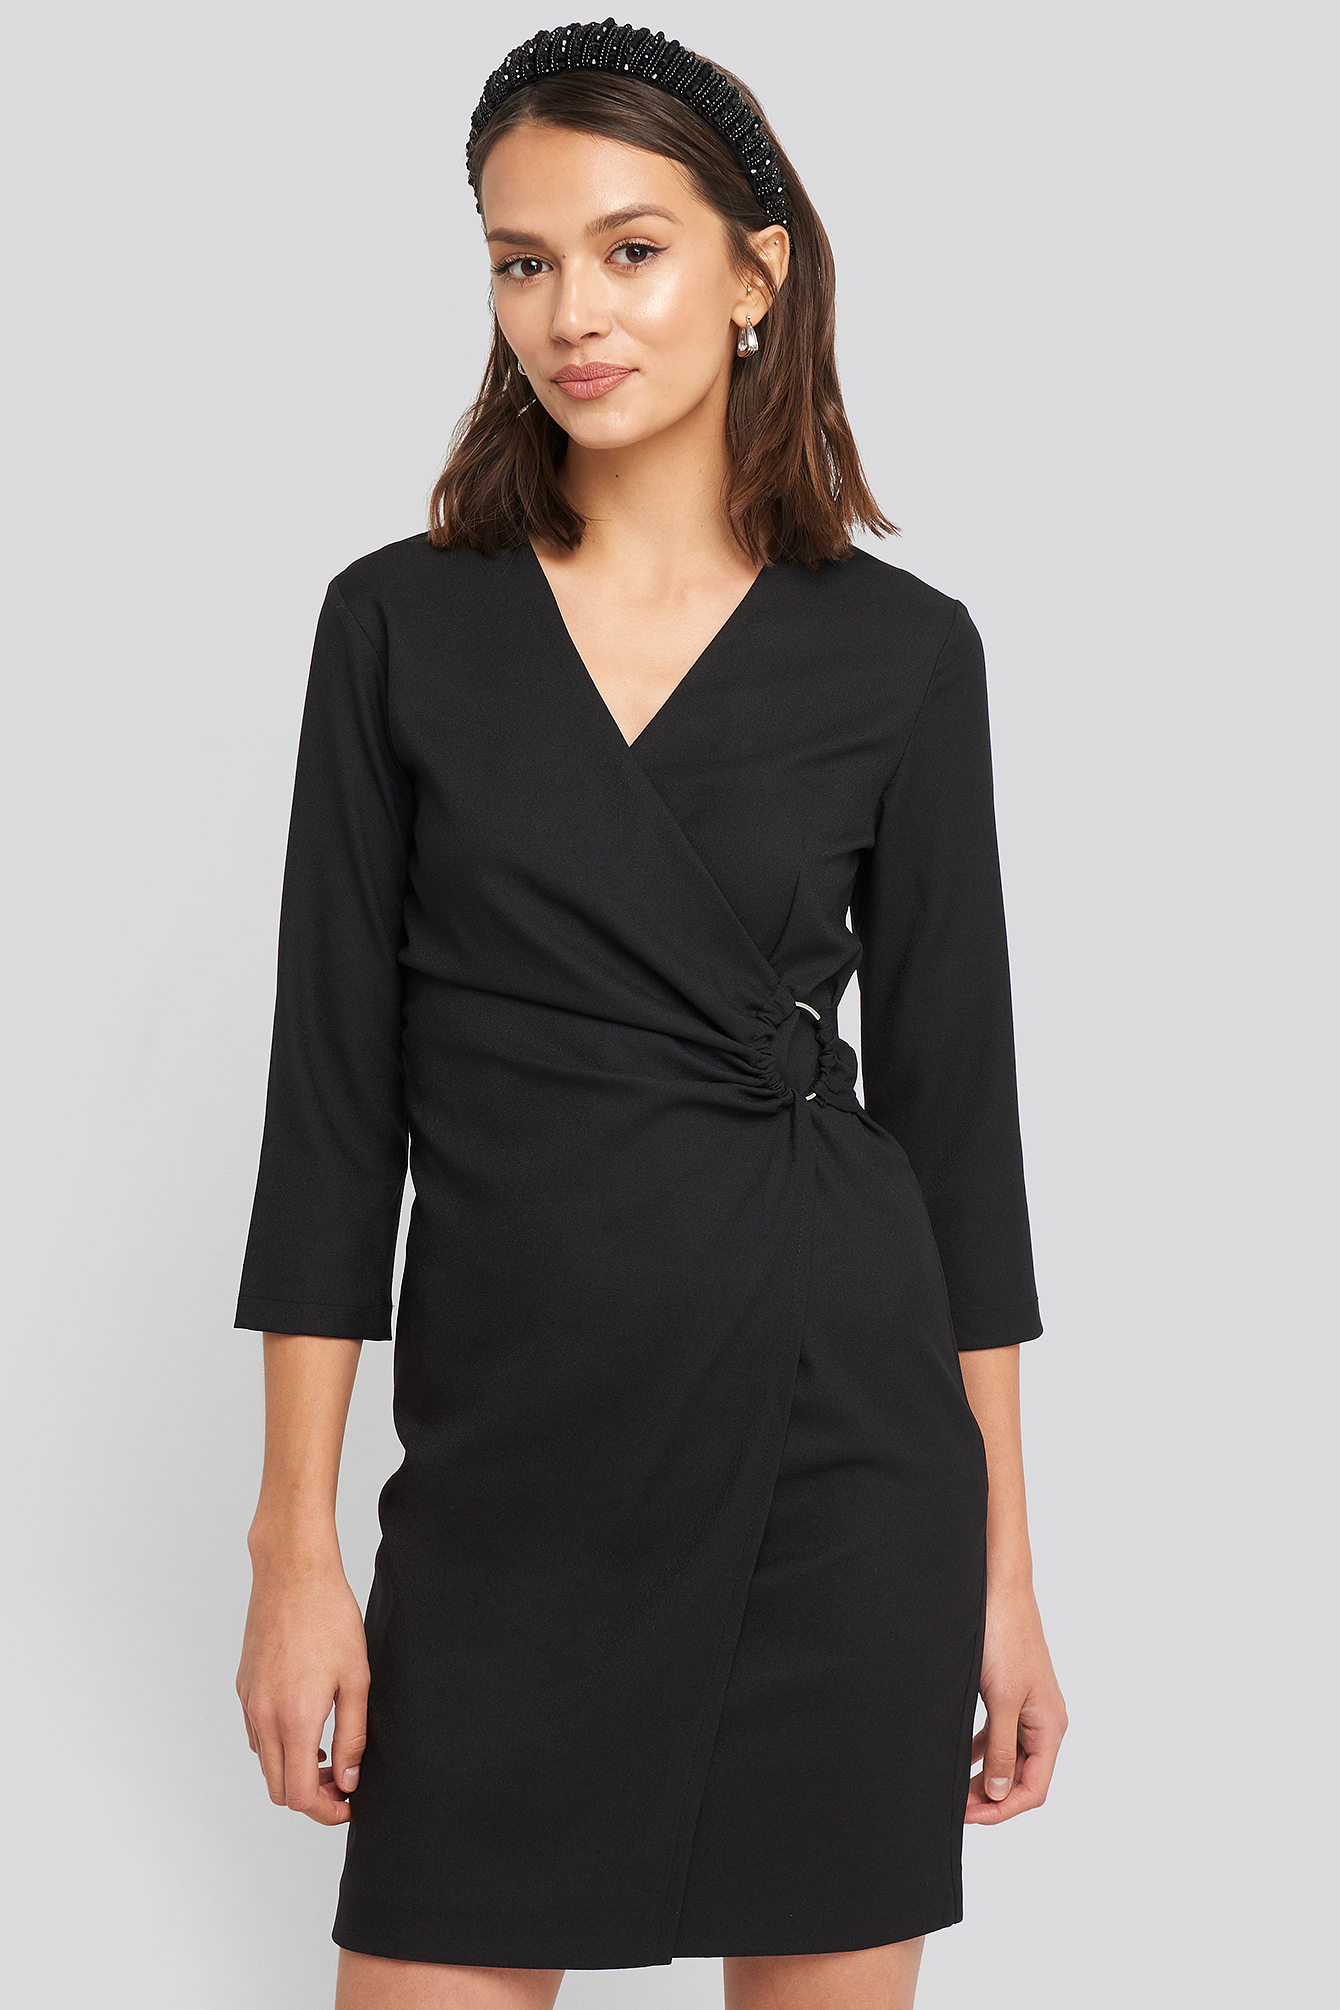 Black Buckle Detailed Mini Dress